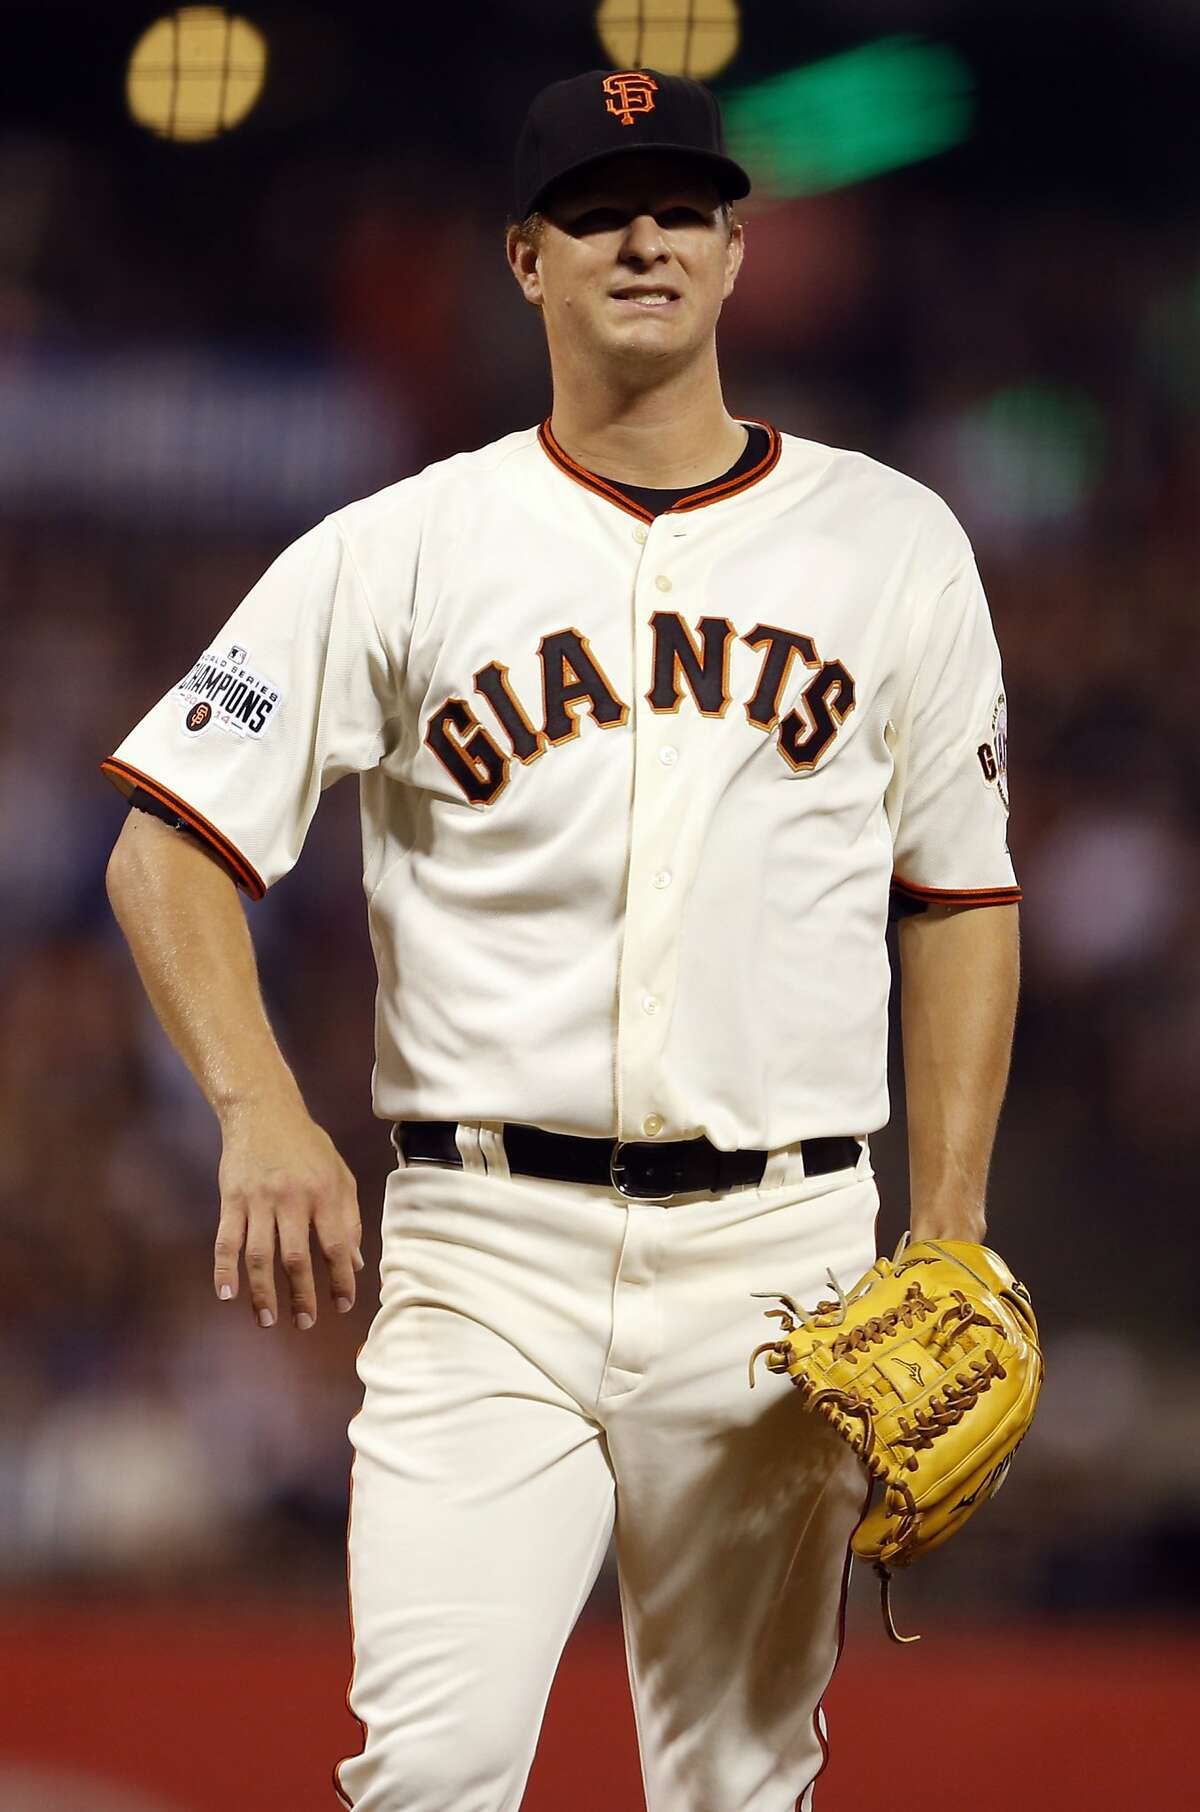 San Francisco Giants' Matt Cain reacts to giving up 2-run home run to Chicago Cubs' Miguel Montero un 4th inning during MLB game at AT&T Park in San Francisco, Calif., on Tuesday, Aug. 25, 2015.